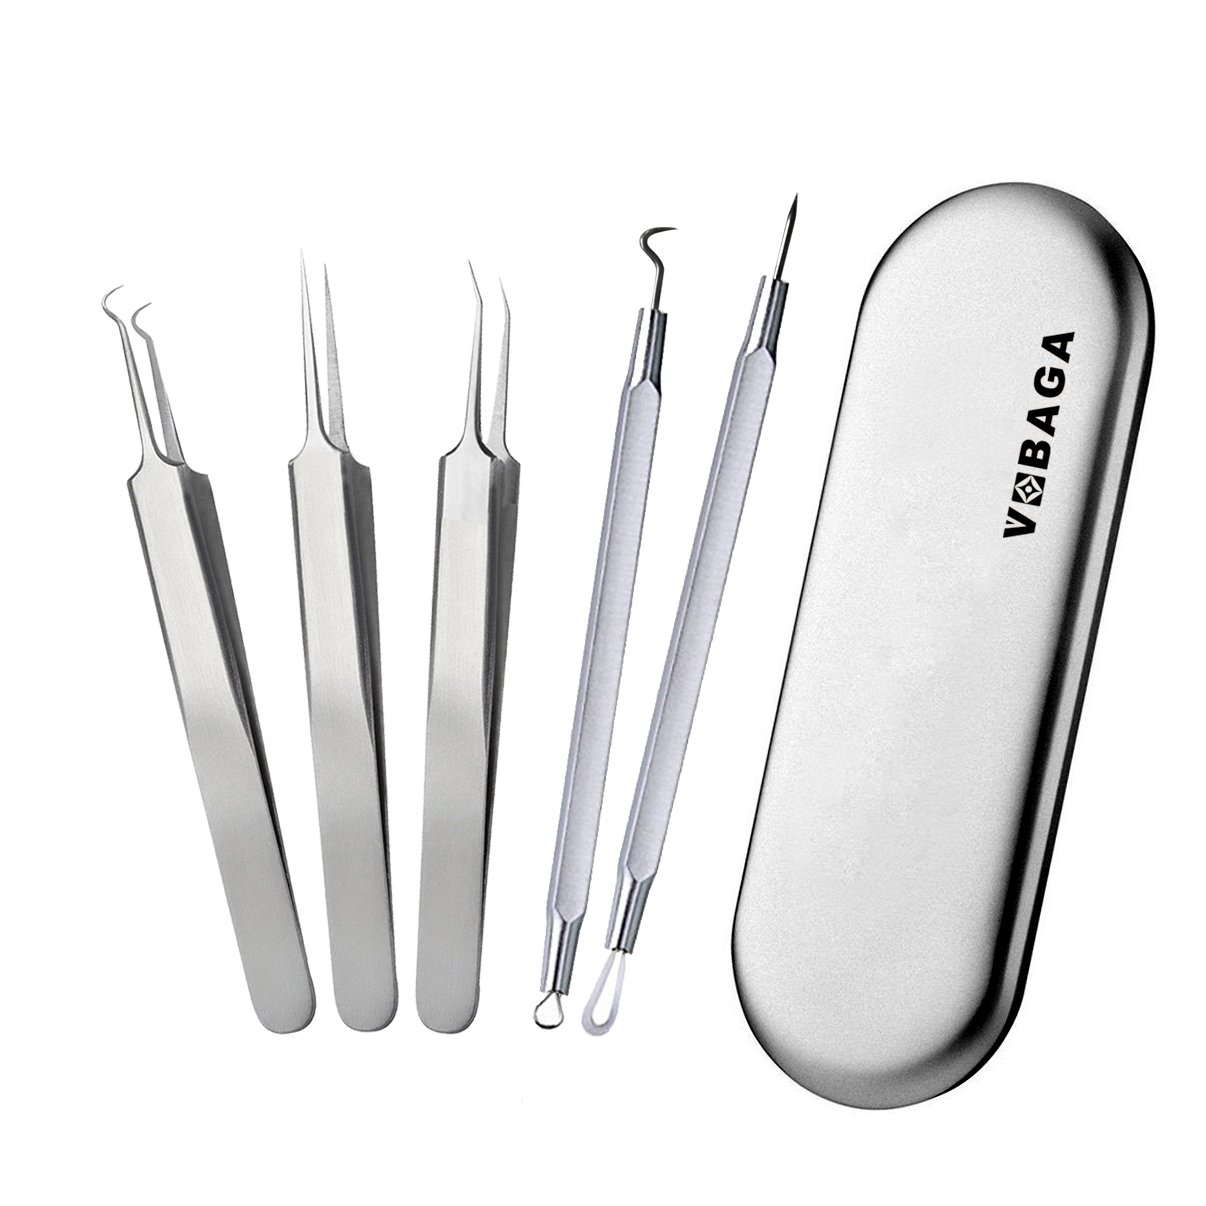 VOBAGA Blackhead Remover Pimple Comedone Extractor Tool Curved Acne Removal Kit,Treatment for Blemish,Whitehead Popping,Fat Particles,Zit popper with Silver Metal Case Tweezers Kit 5pcs